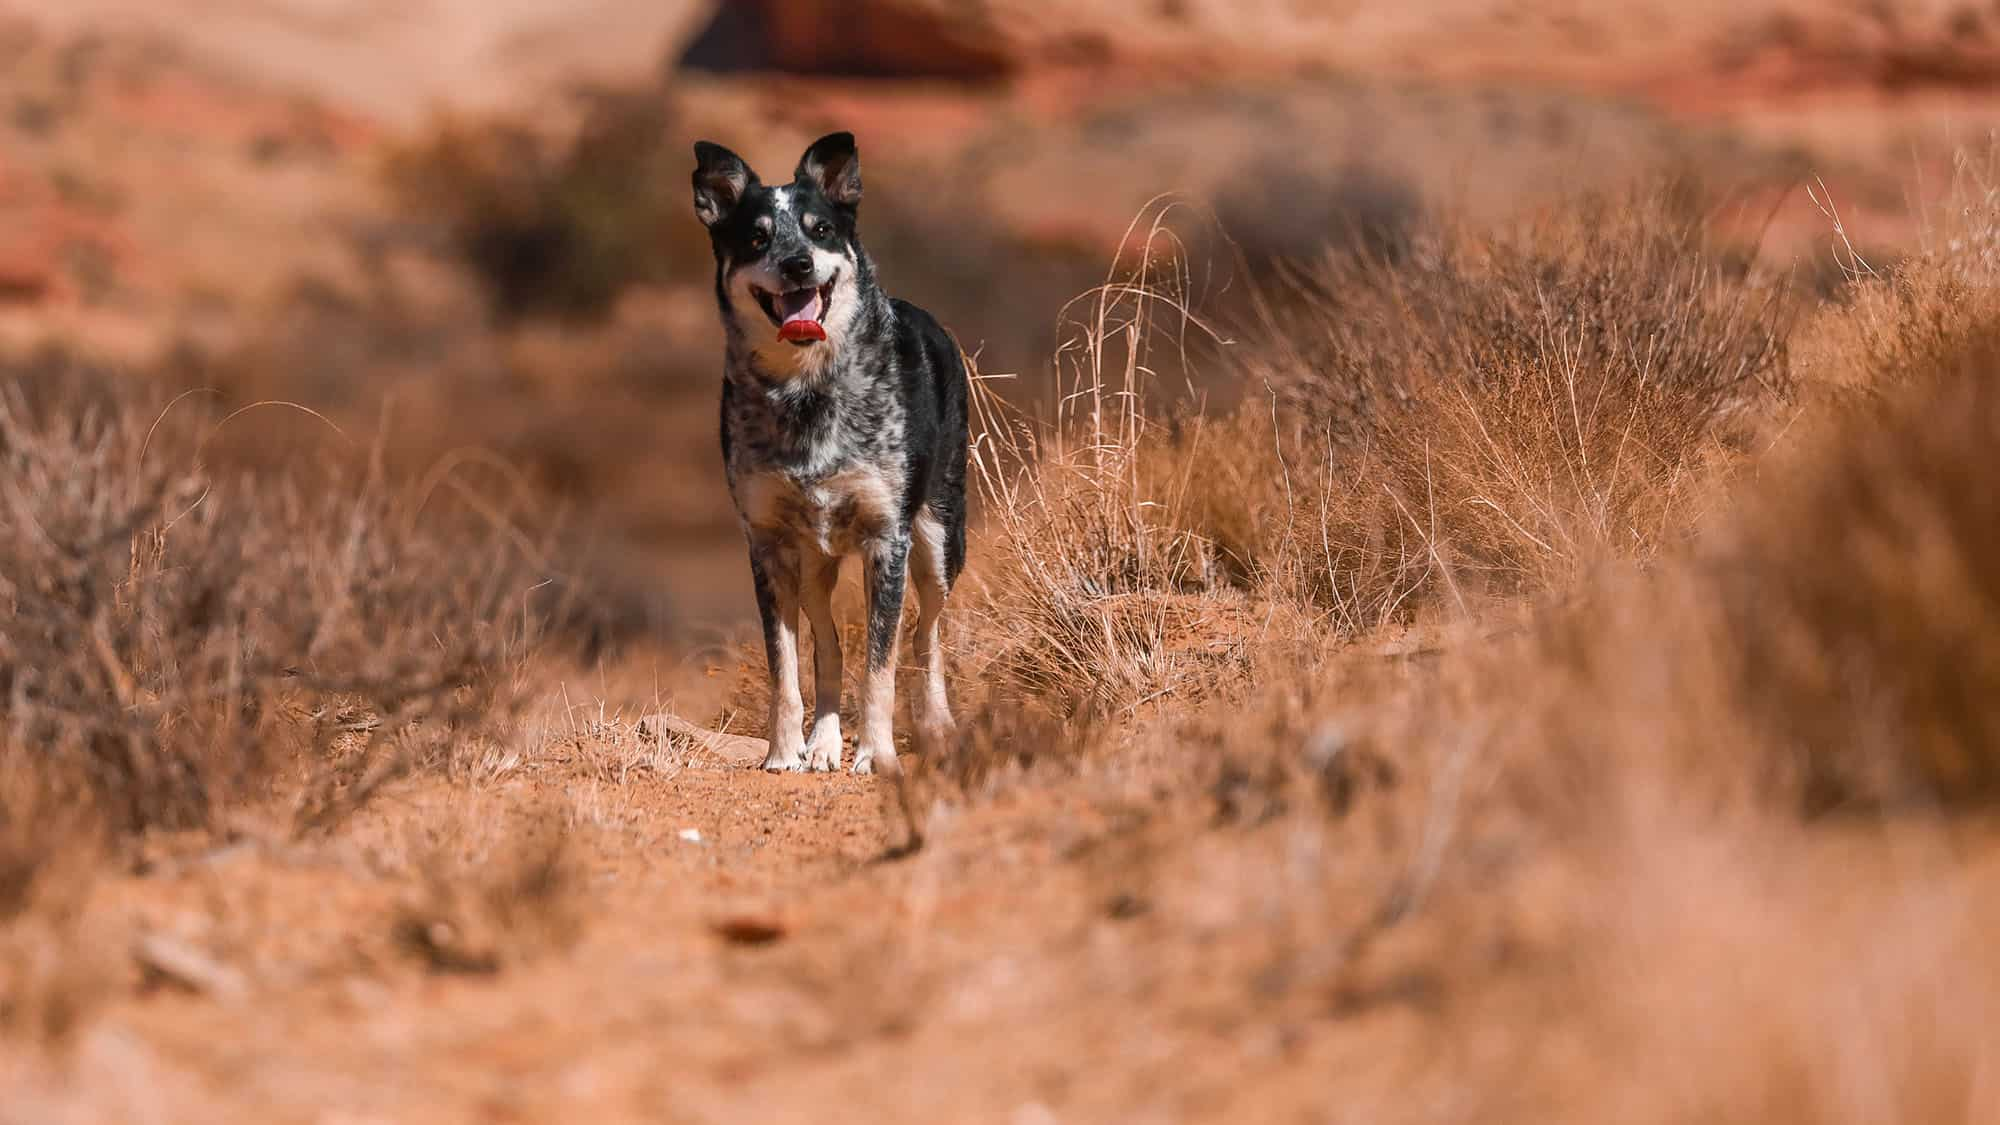 10. Australian Cattle Dog